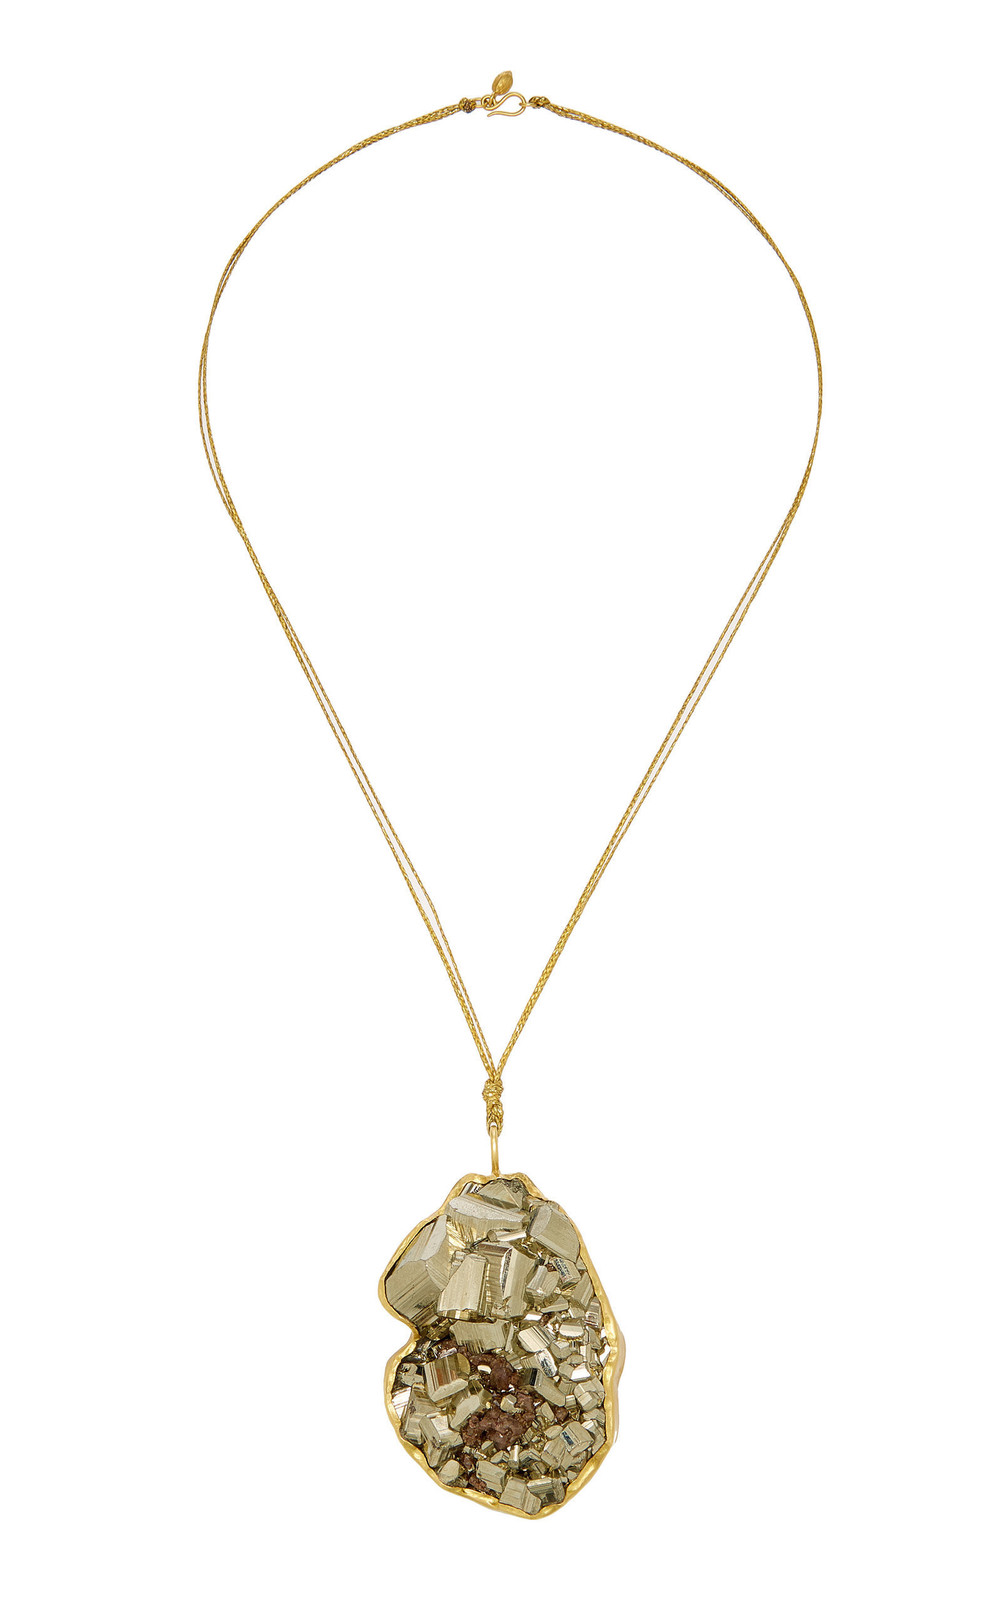 Pippa Small Dazzle Extra Large Colette Set Pyrite Pendant On Cord in gold